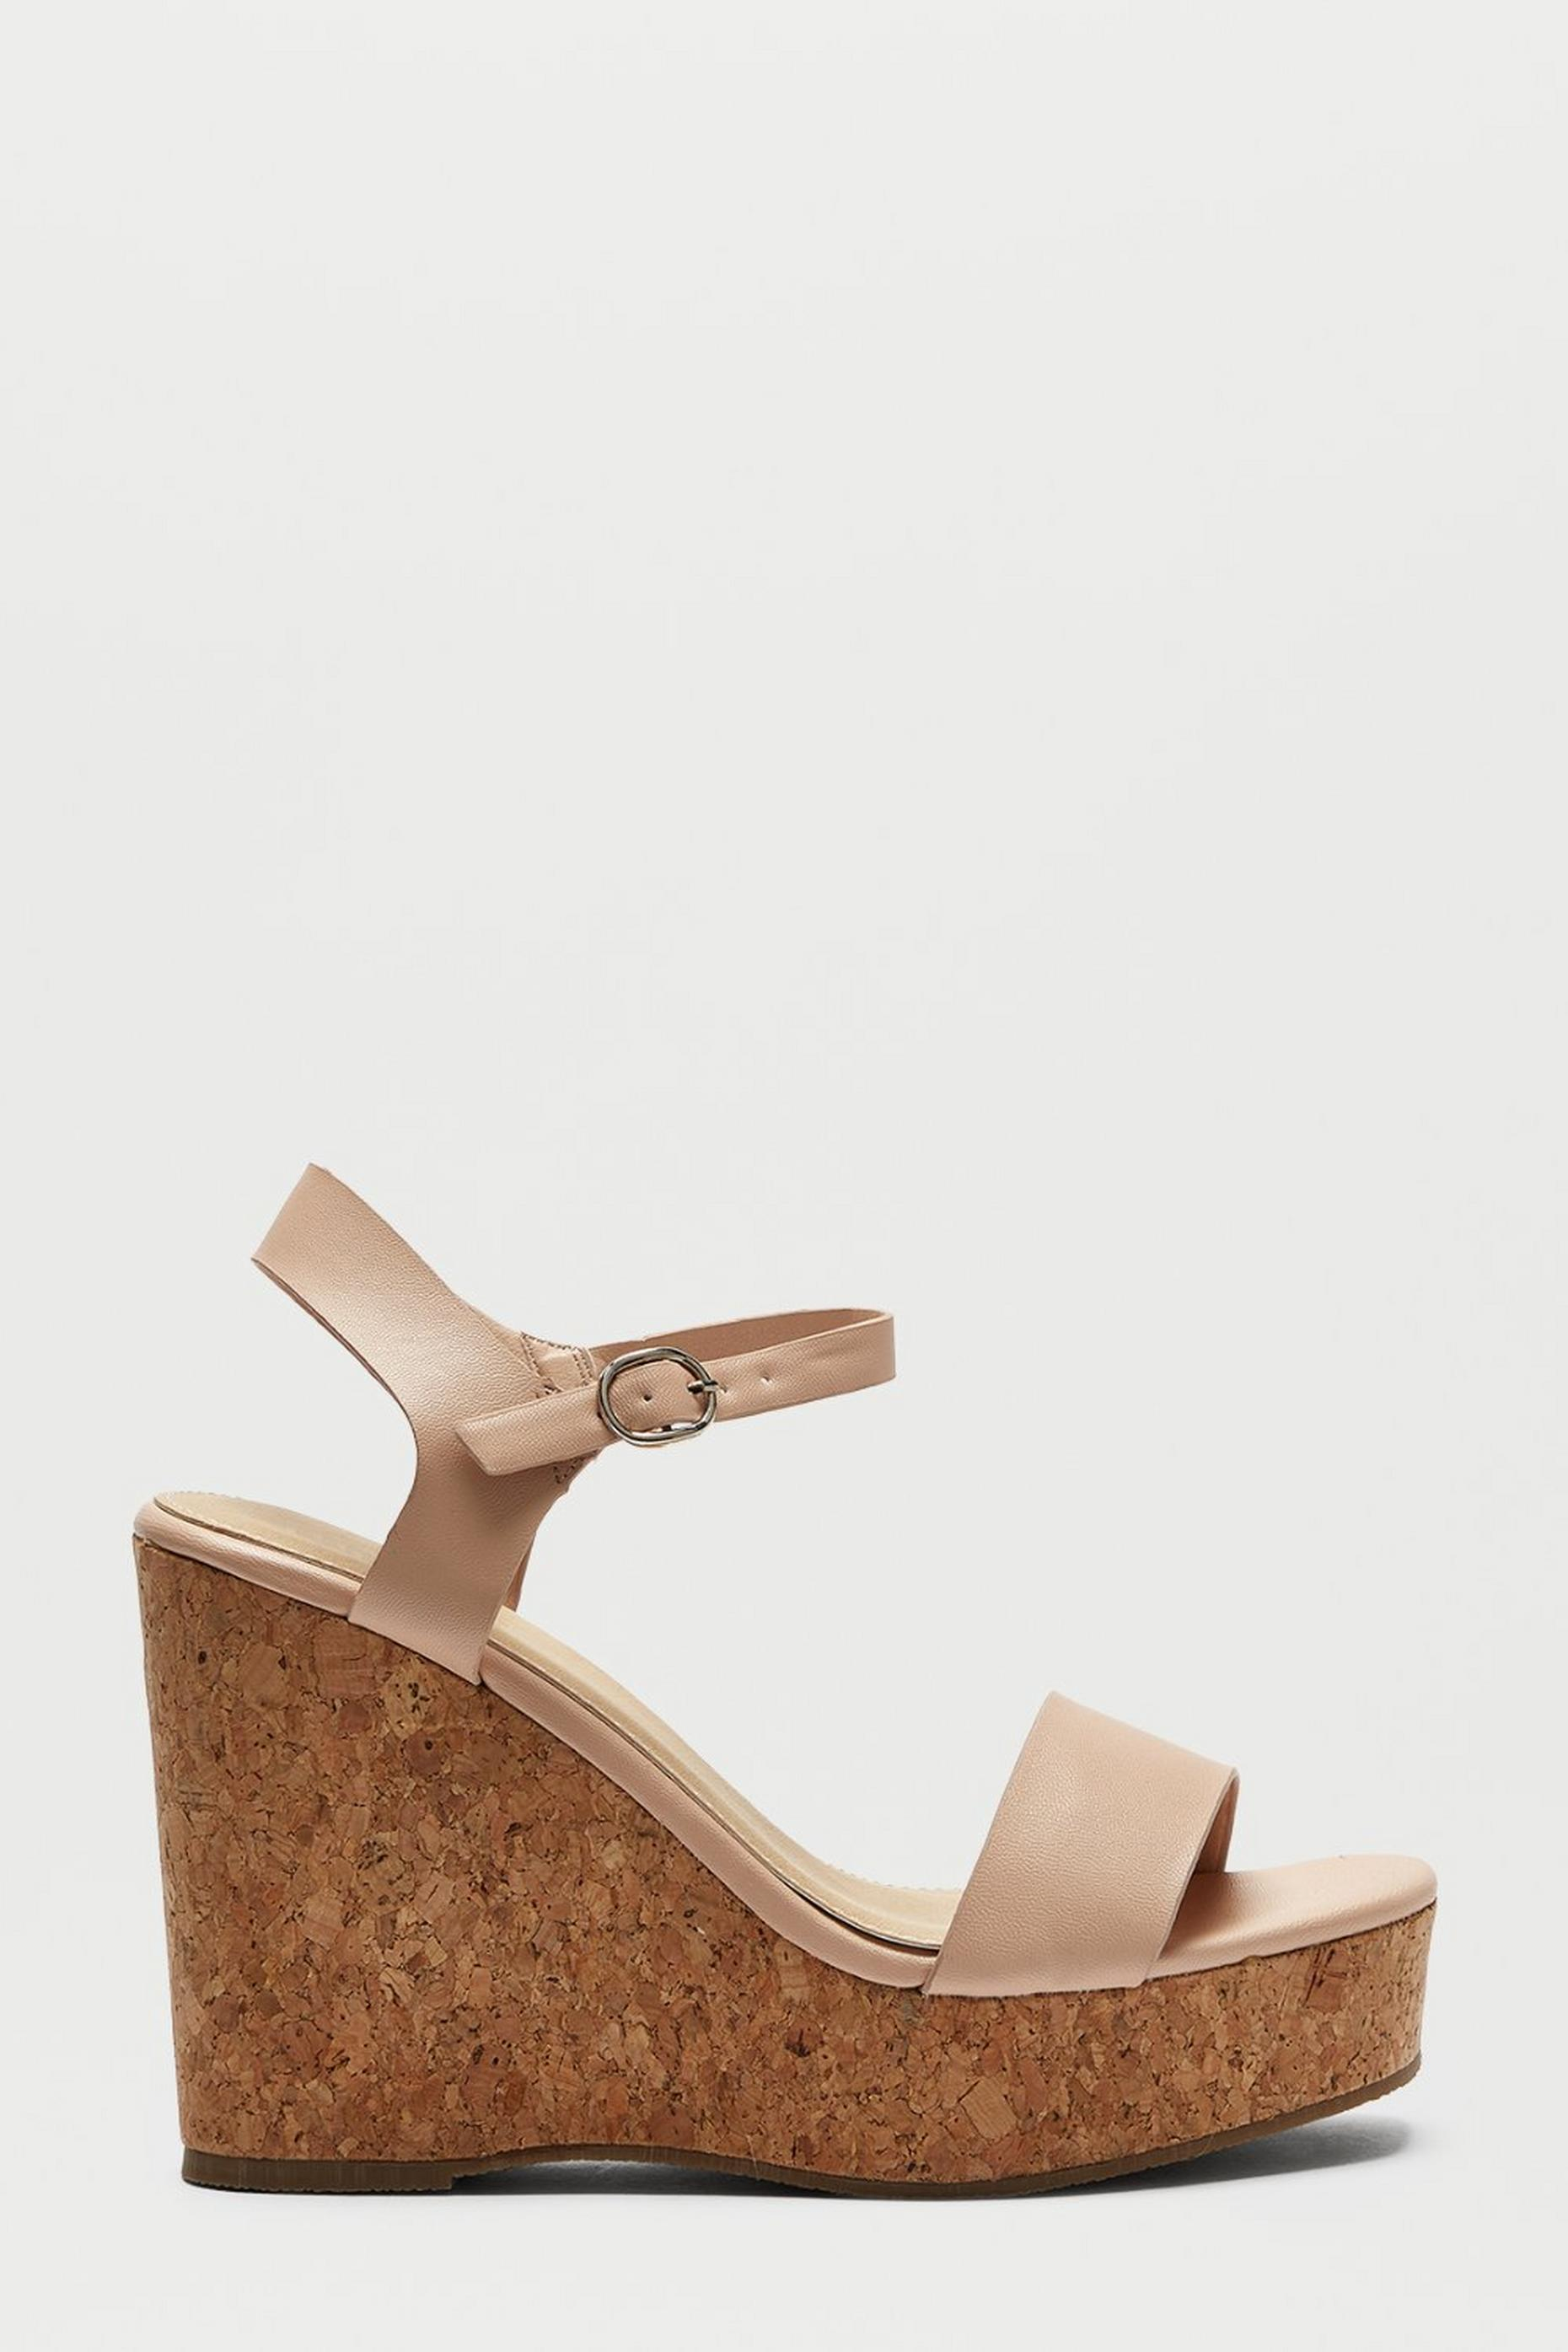 Blush Ryleigh Two Part Cork Wedge